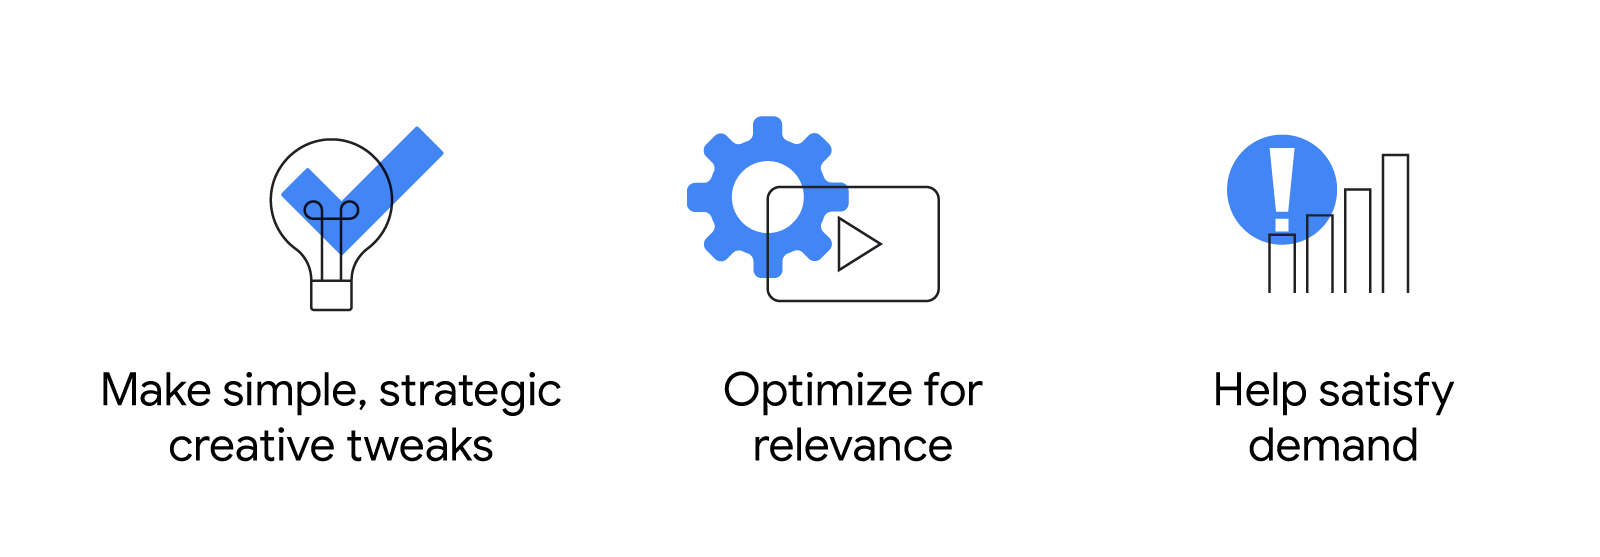 3 illustrated icons represent the concepts of making simple, strategic creative tweaks, optimizing for relevance, and helping satisfy demand